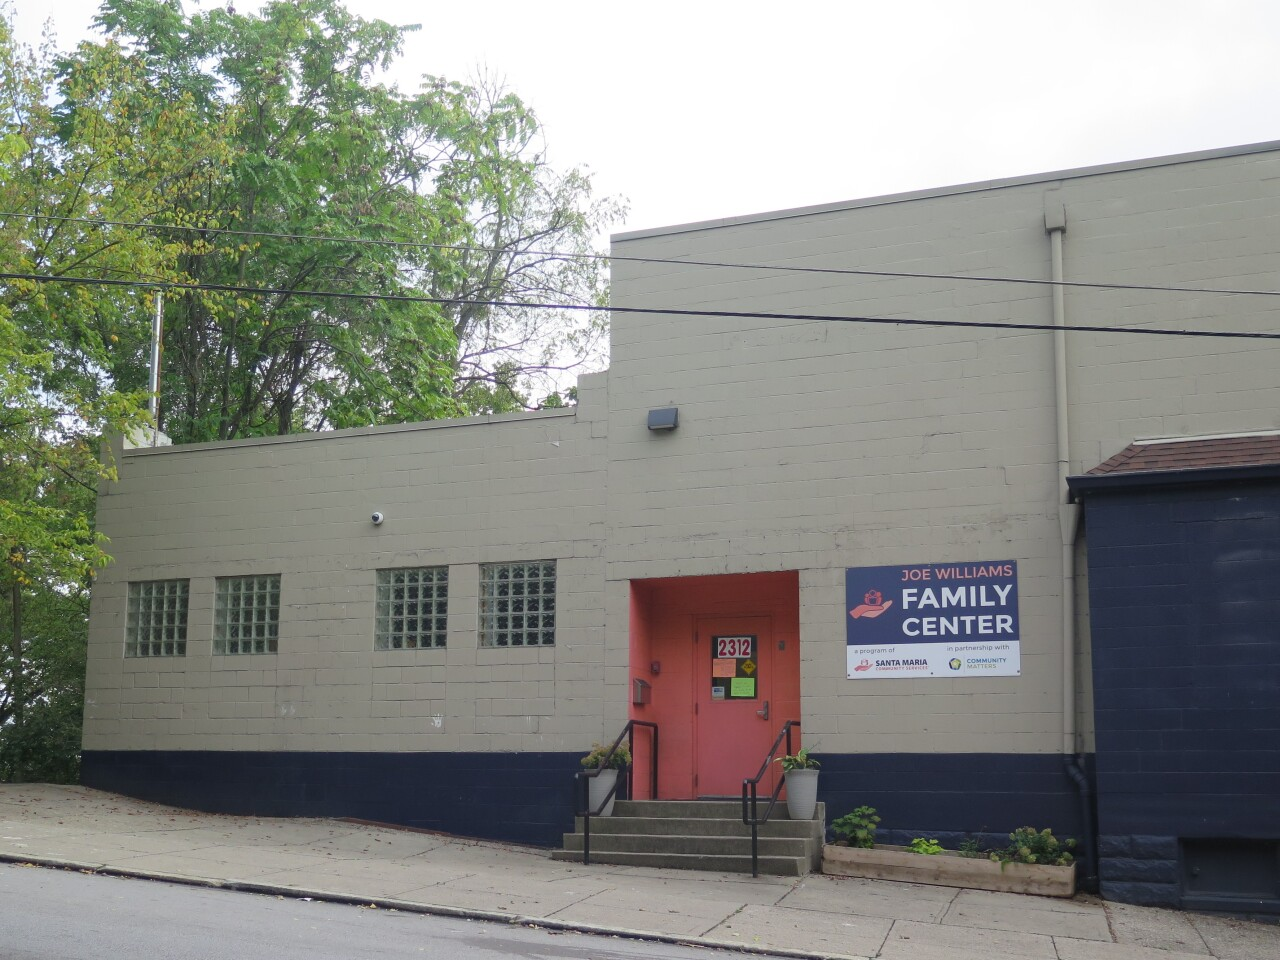 The Joe Williams Family Center in Lower Price Hill is a cinderblock building painted a greyish color with a red door.